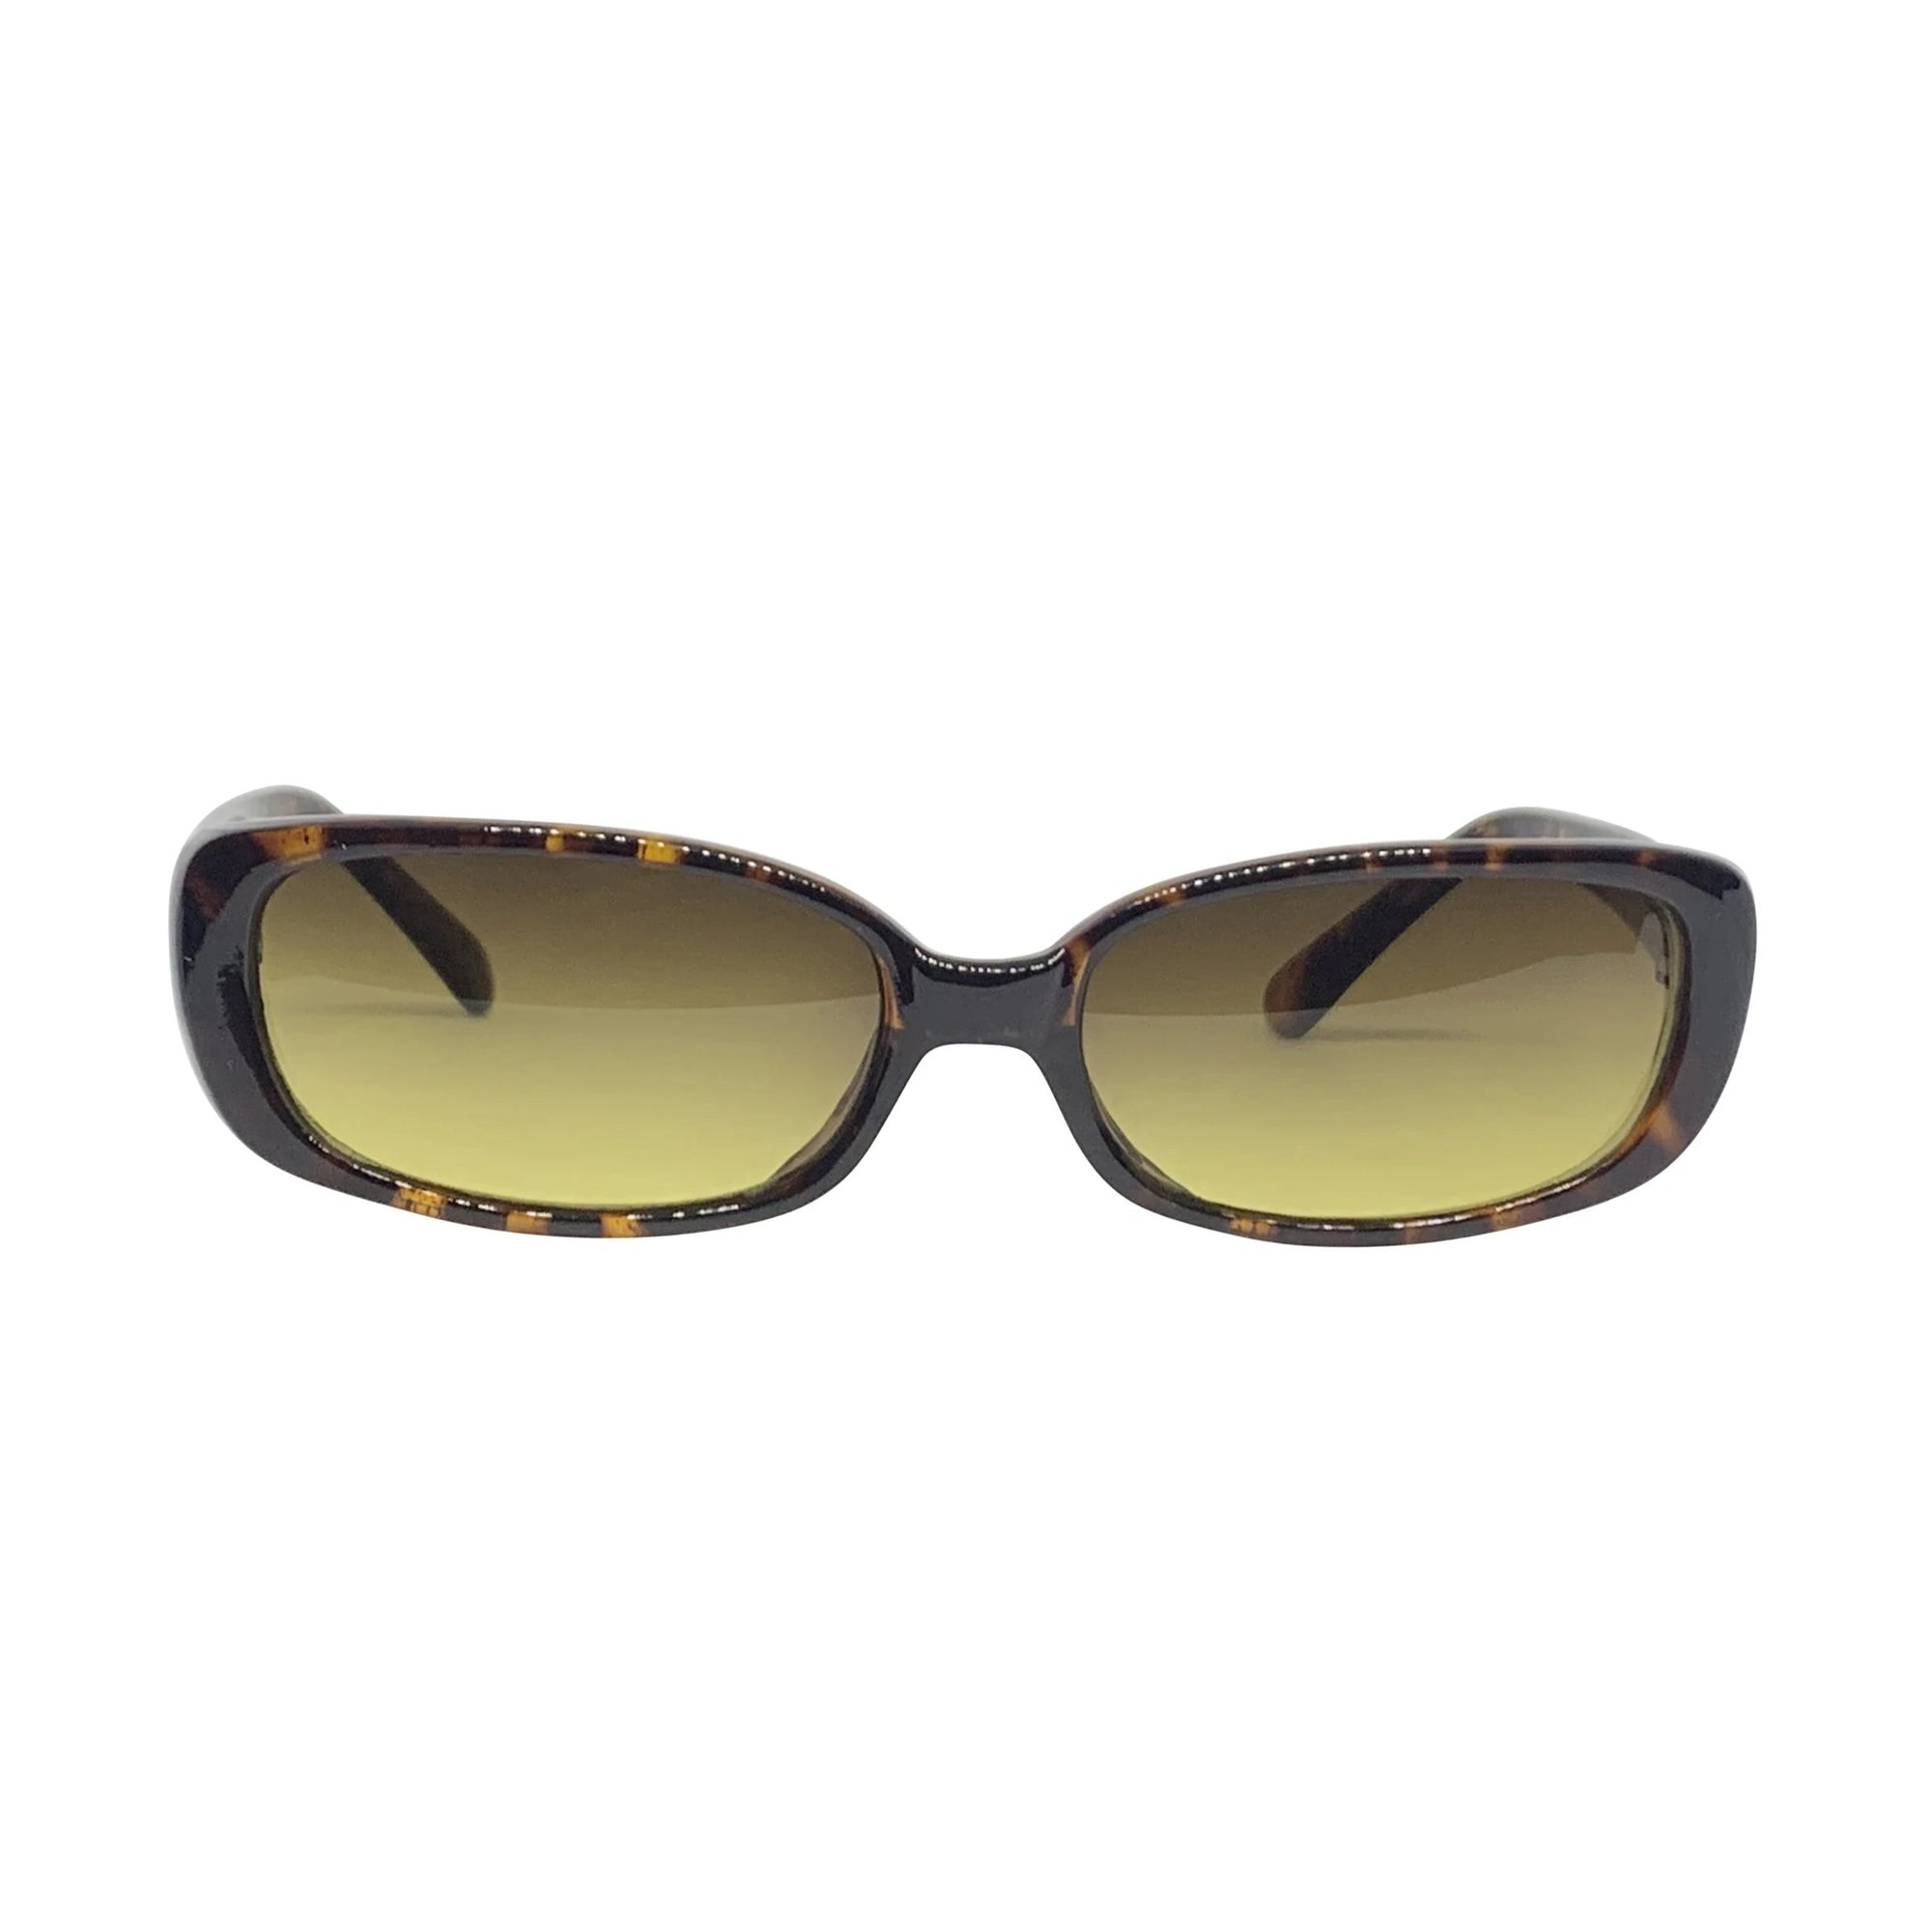 BUGGIN' Tortoise and Swamp 90s Square Sunnies